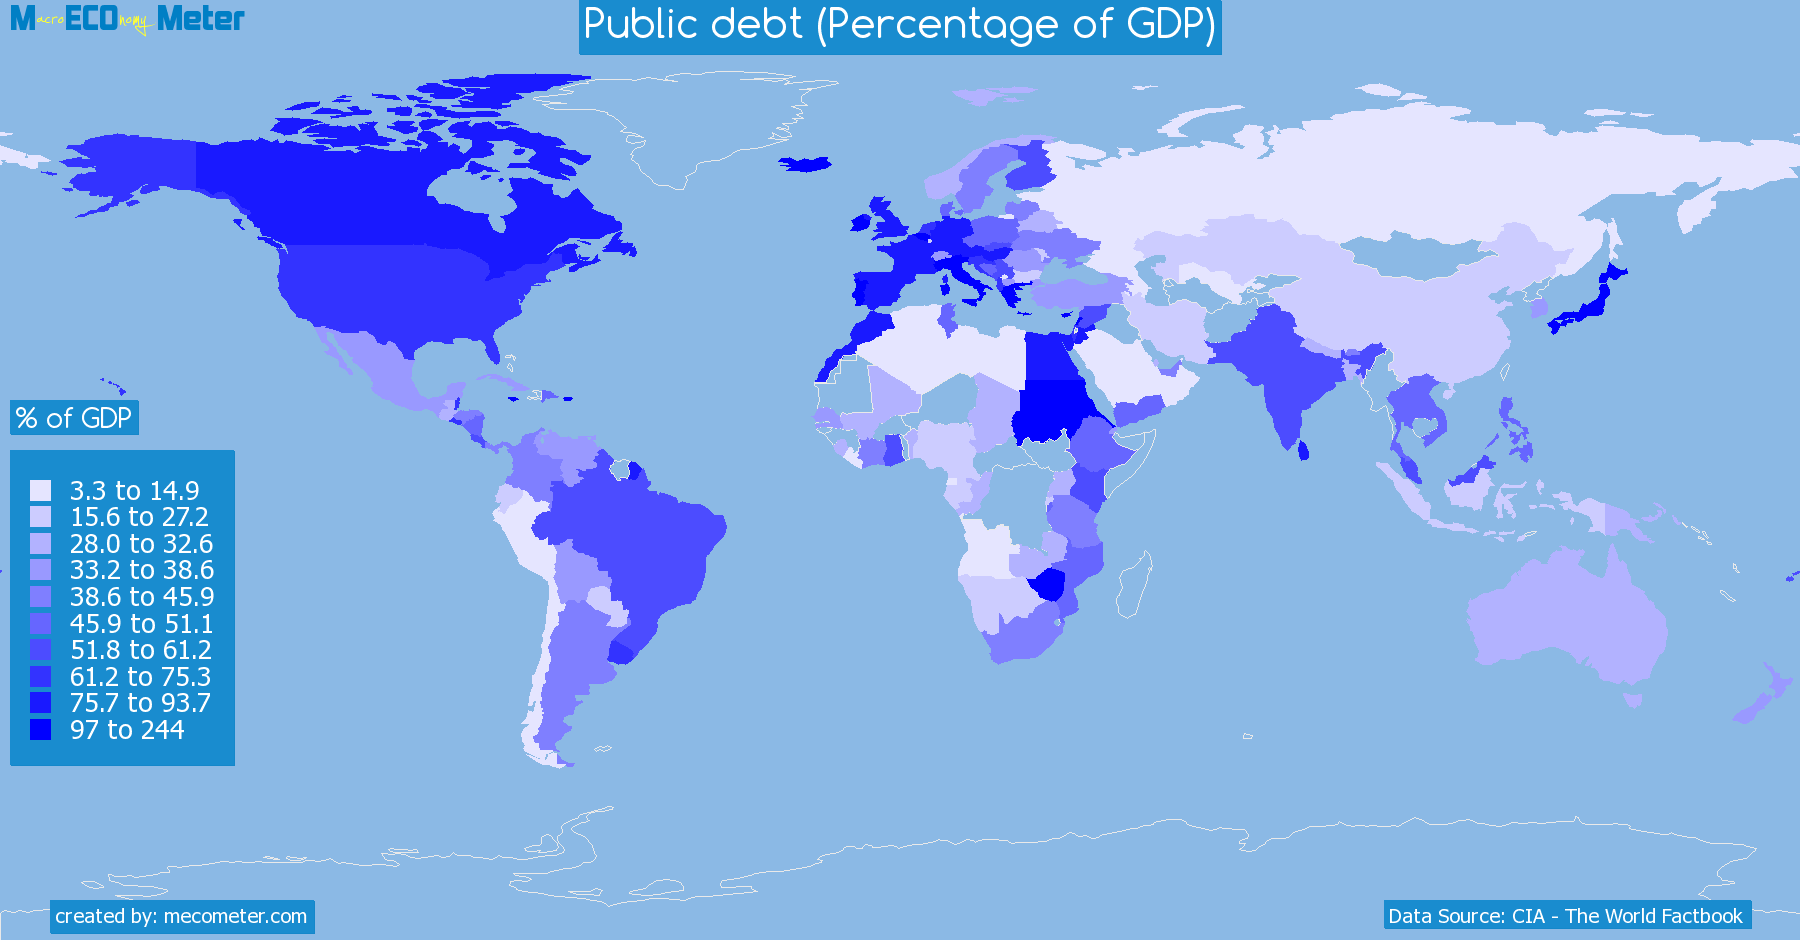 Worldmap of all countries colored to reflect the values of Public debt (Percentage of GDP)